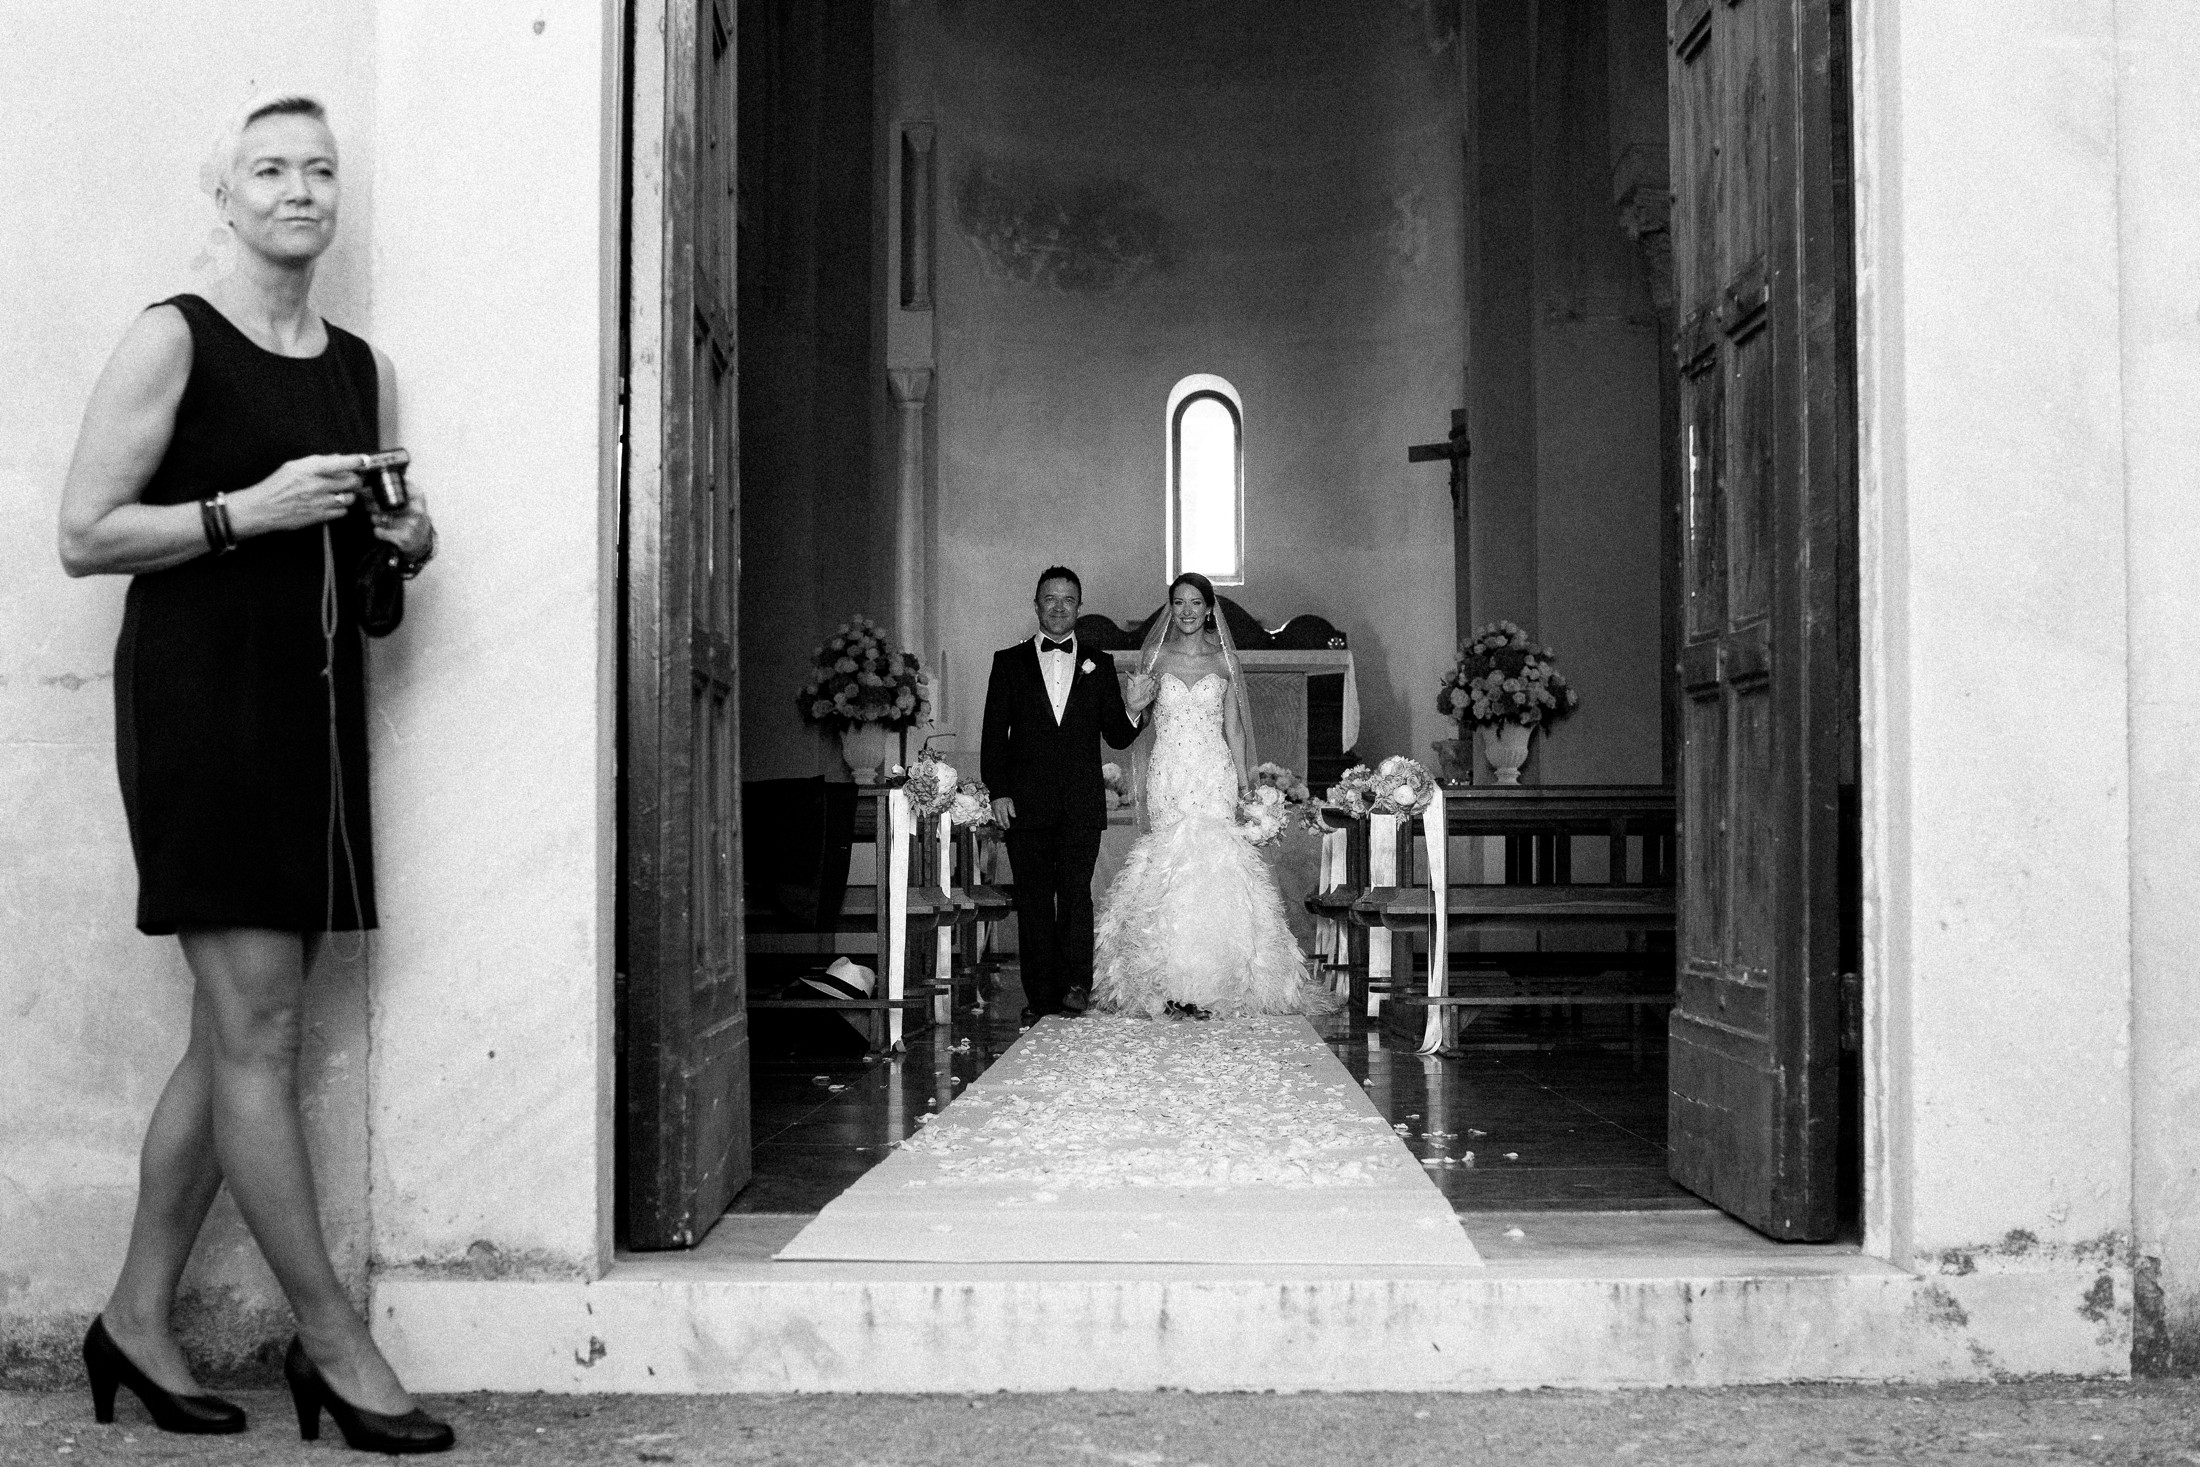 the bride and the groom leaving the church